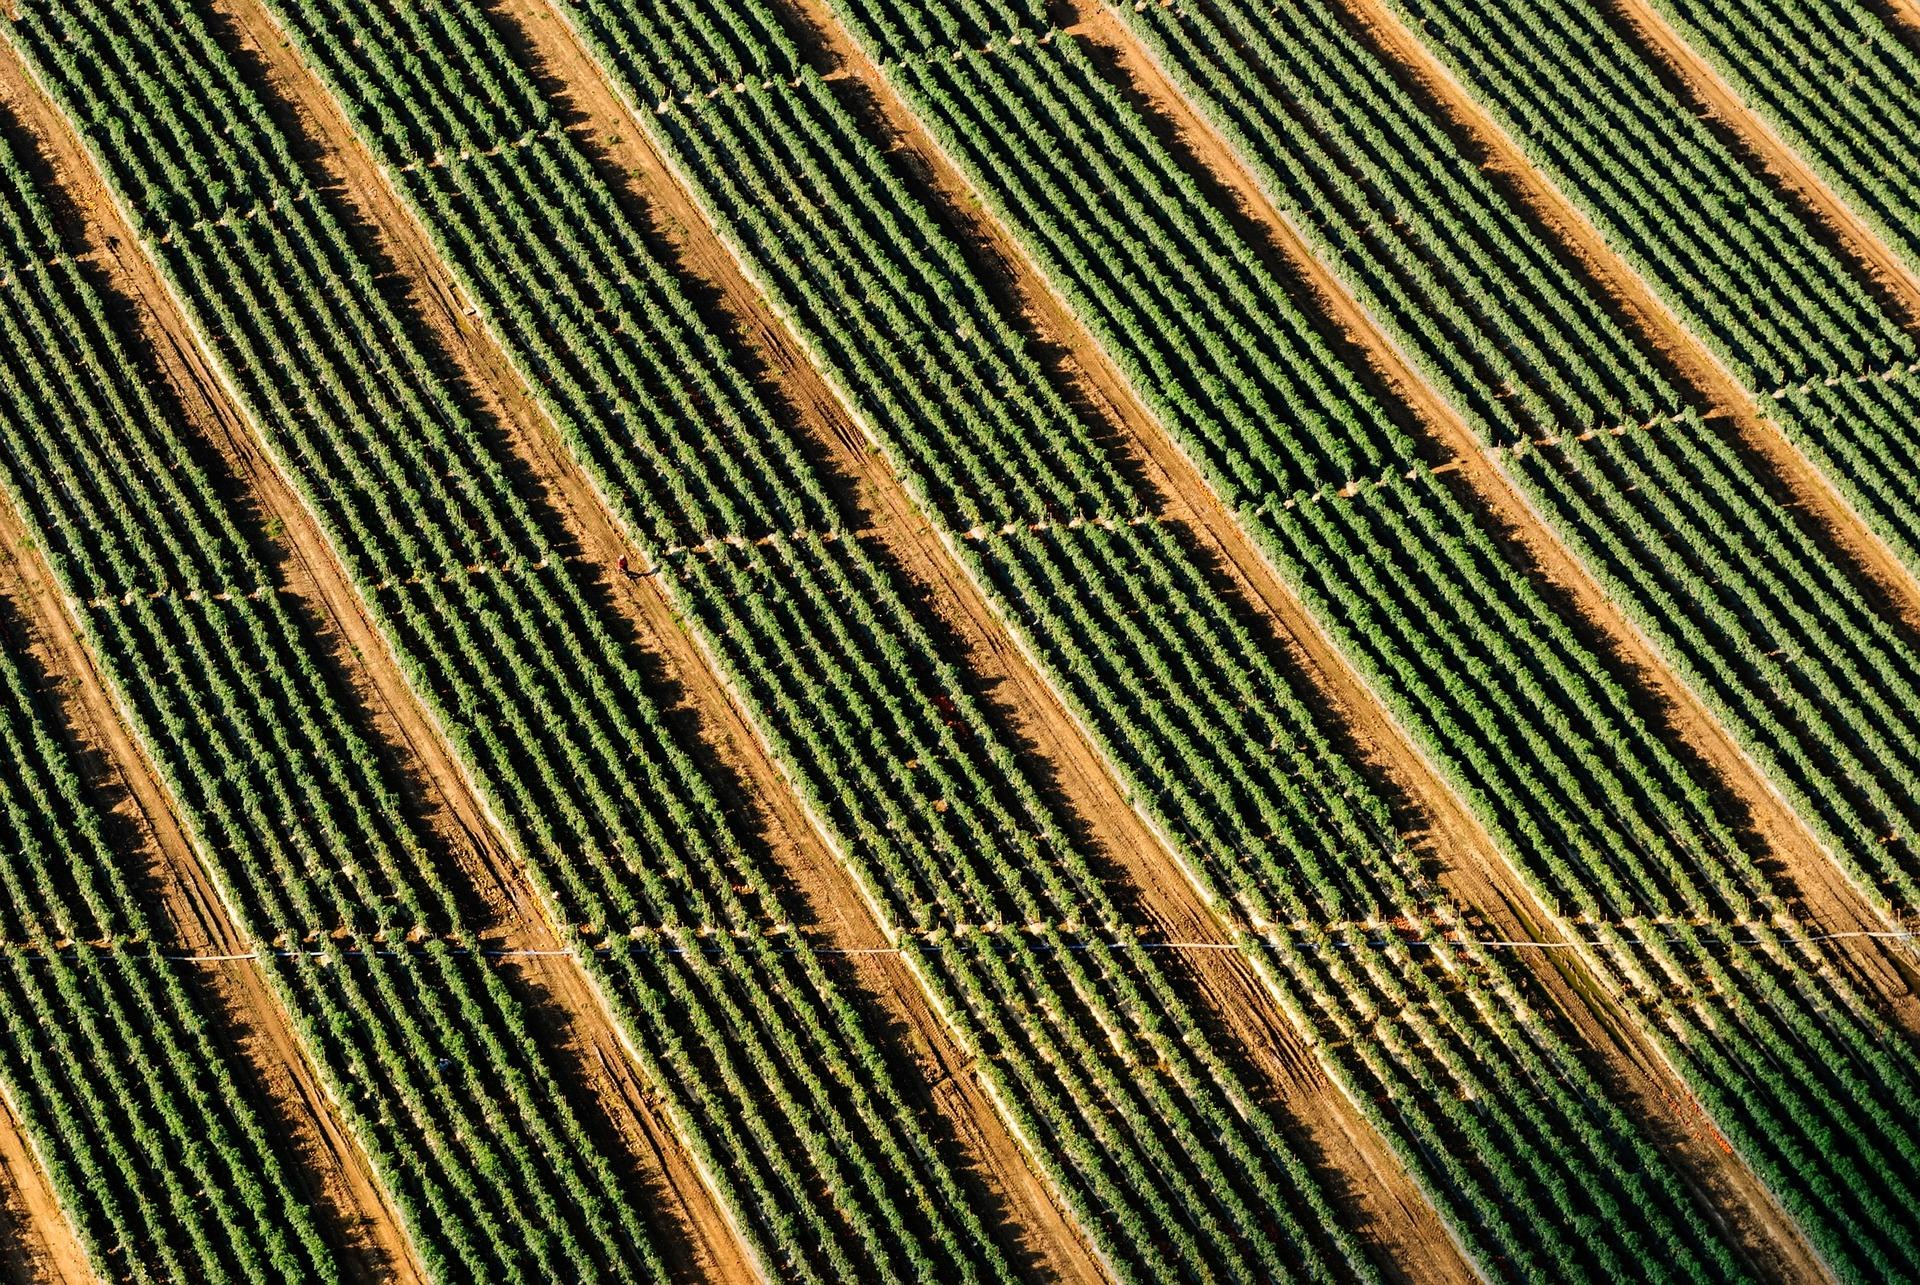 Image of identical farm rows in a field